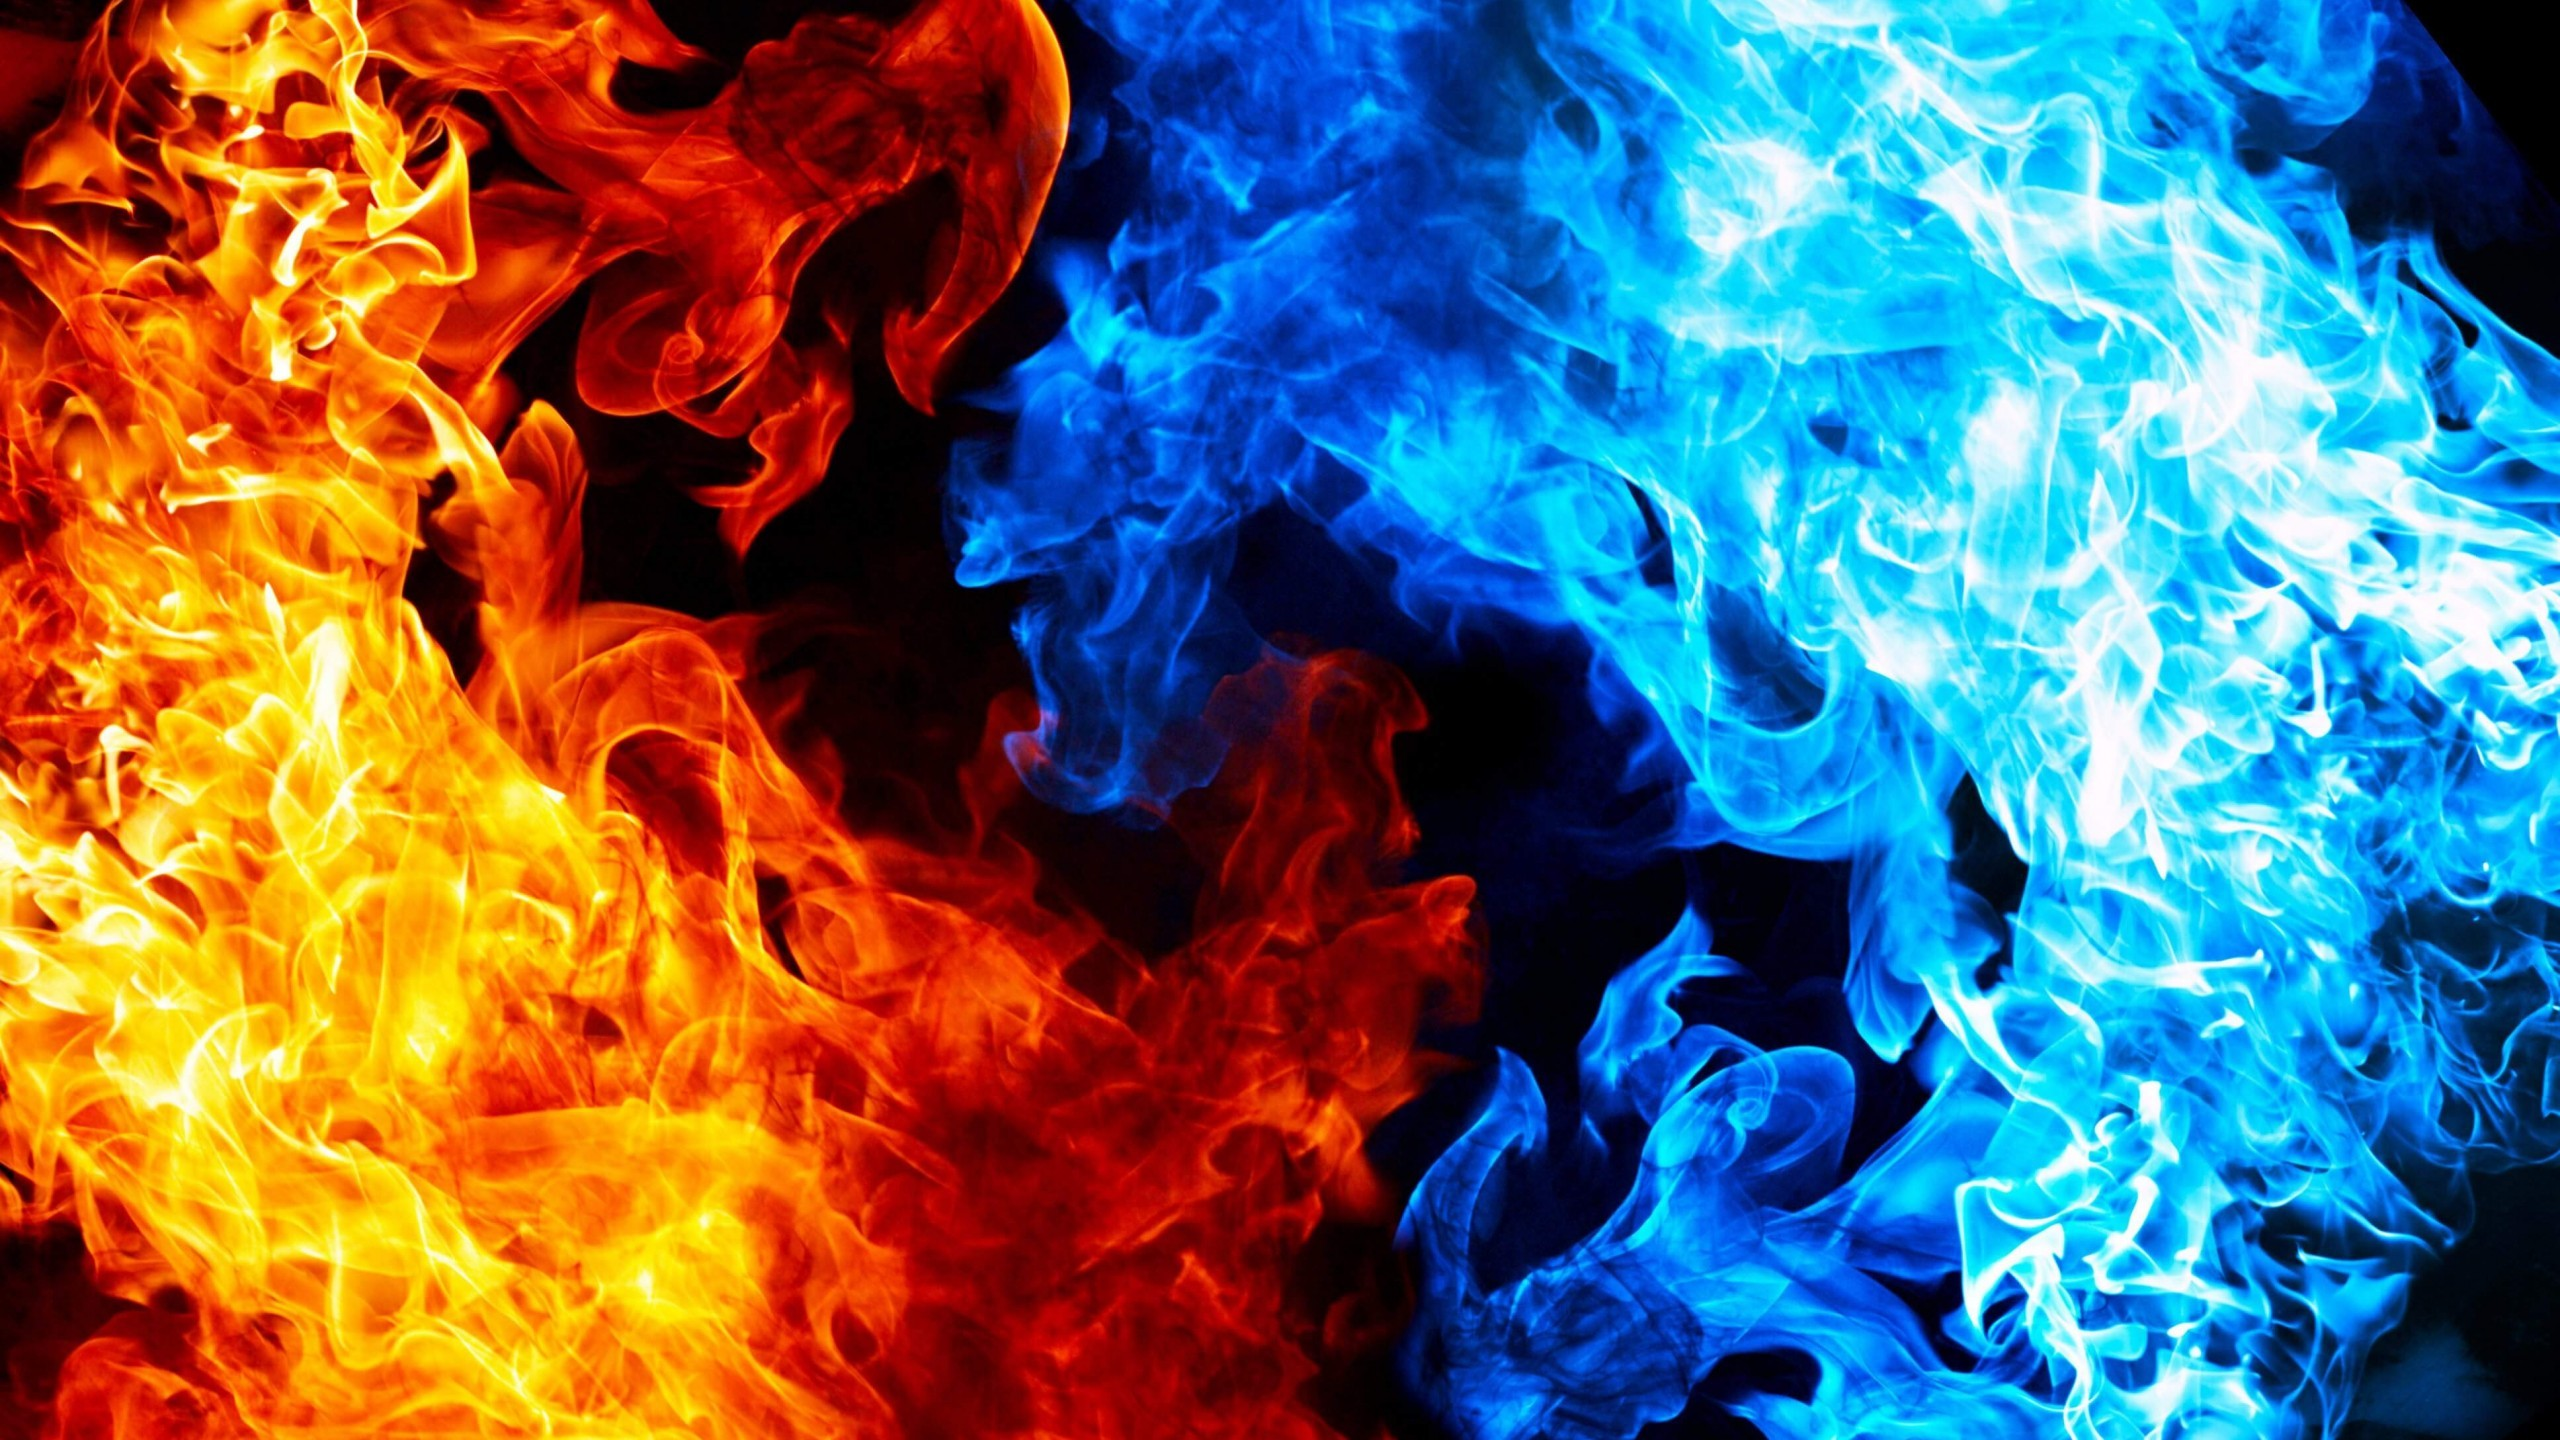 Blue And Red Fire Wallpaper for Desktop 2560 x 1440